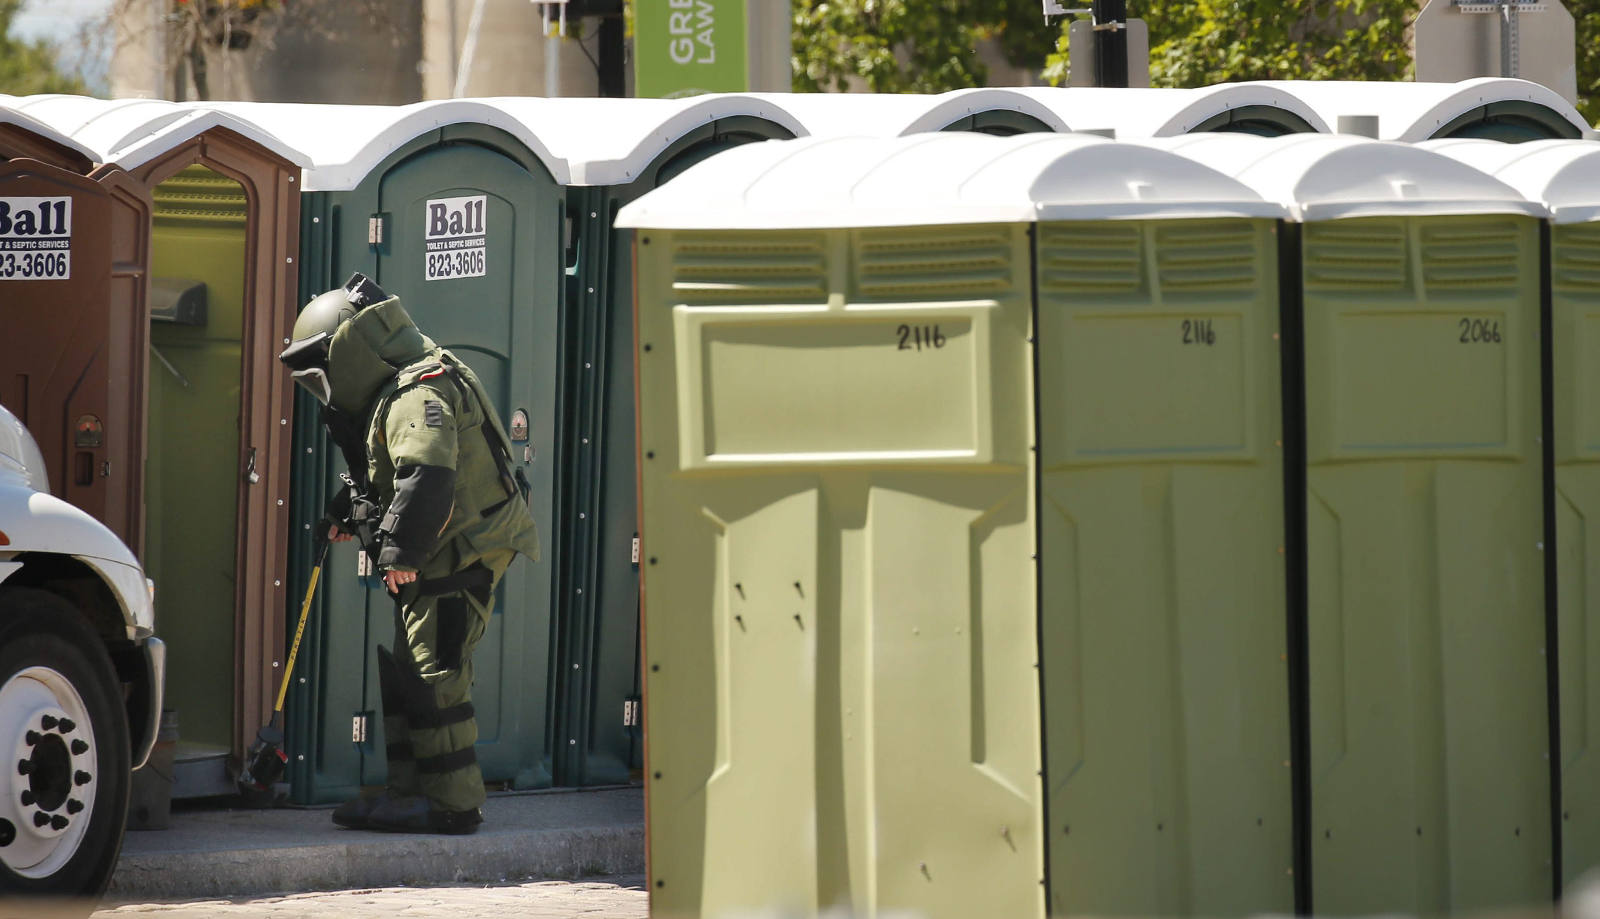 An Erie County Sheriff bomb technician examines a suspicious package in a portable toilet at Canalside, Friday, June 17, 2016. (Derek Gee/Buffalo News)